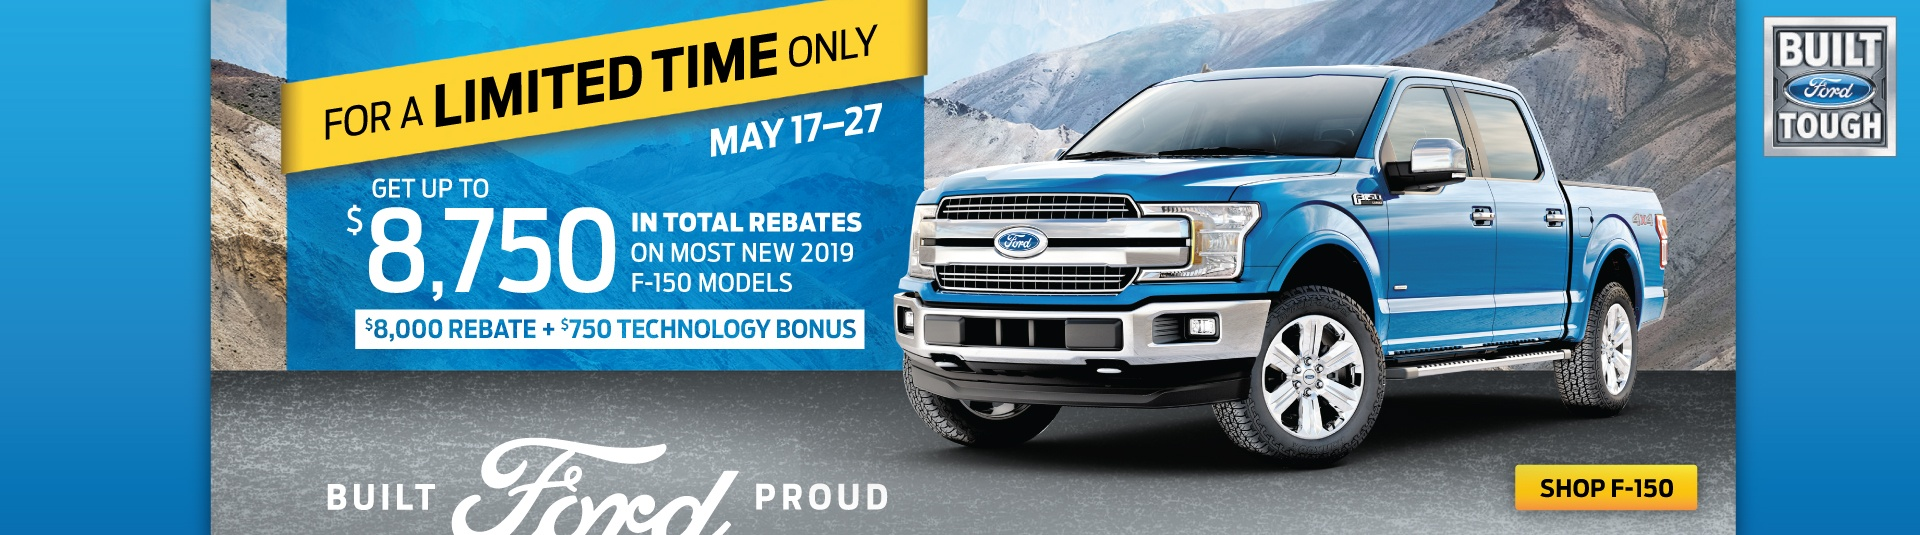 Bayfield Ford F150 May Offer